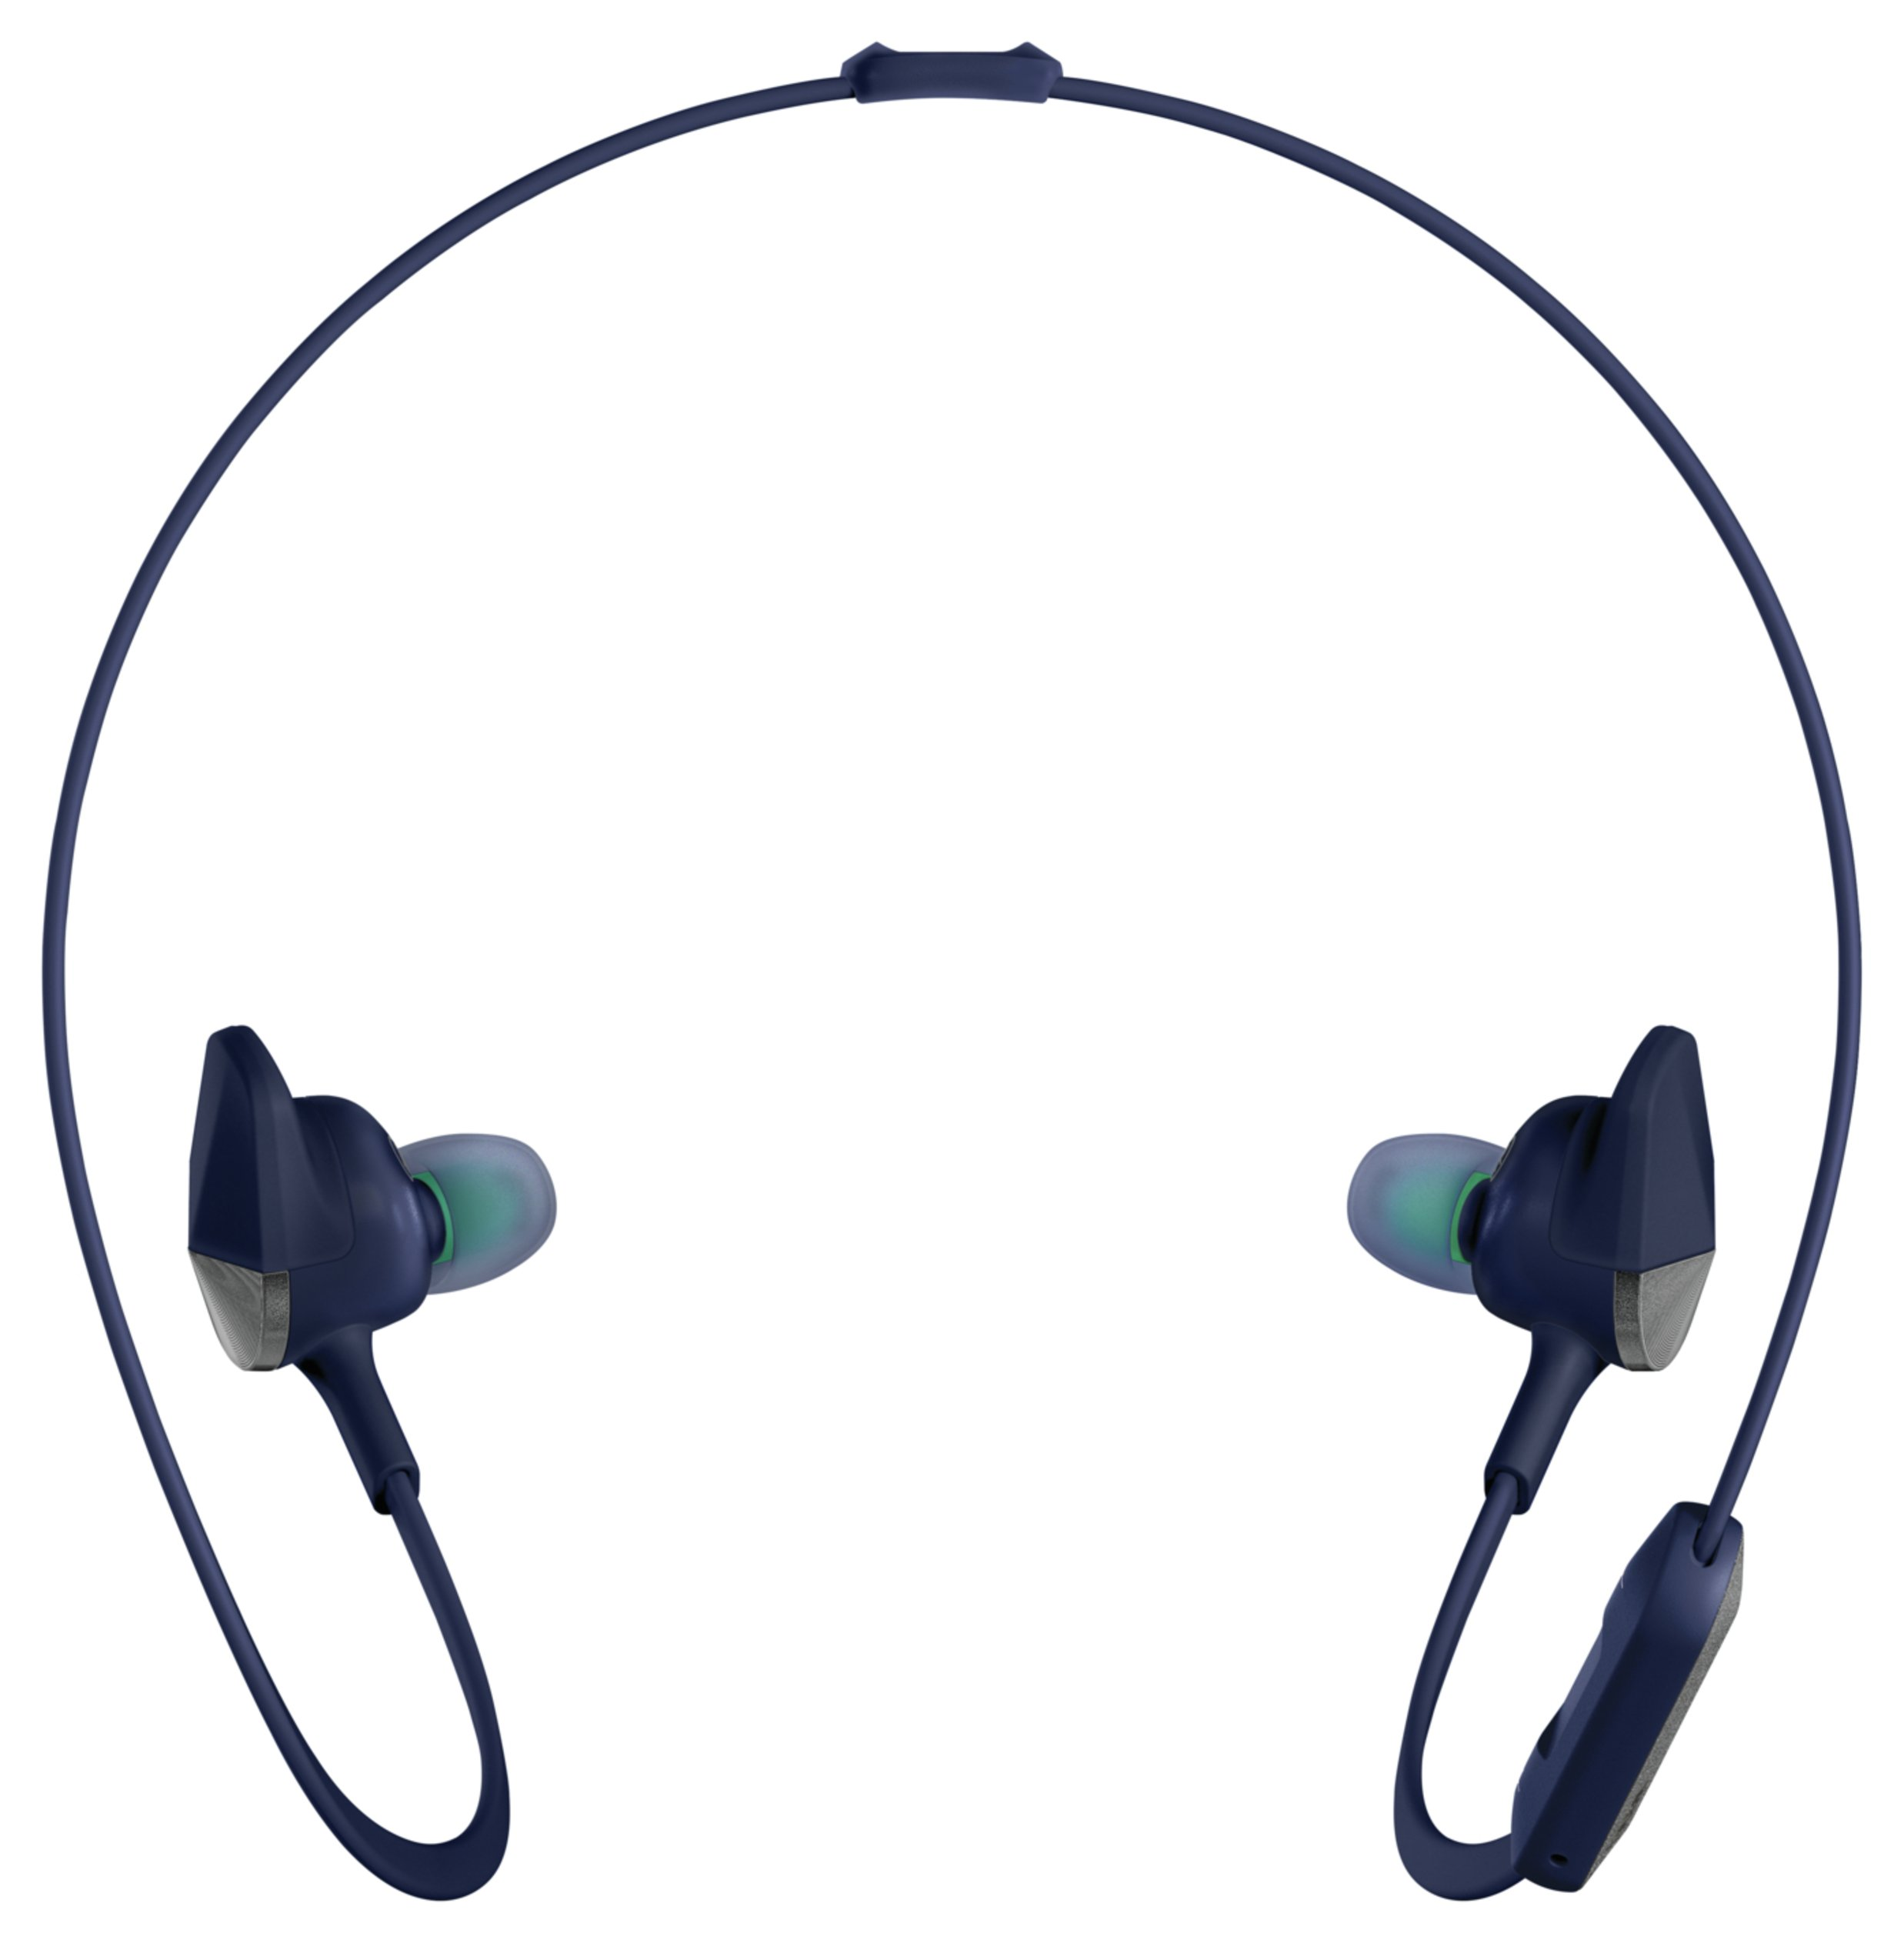 Fitbit Flyer Headphones - Nightfall Blue